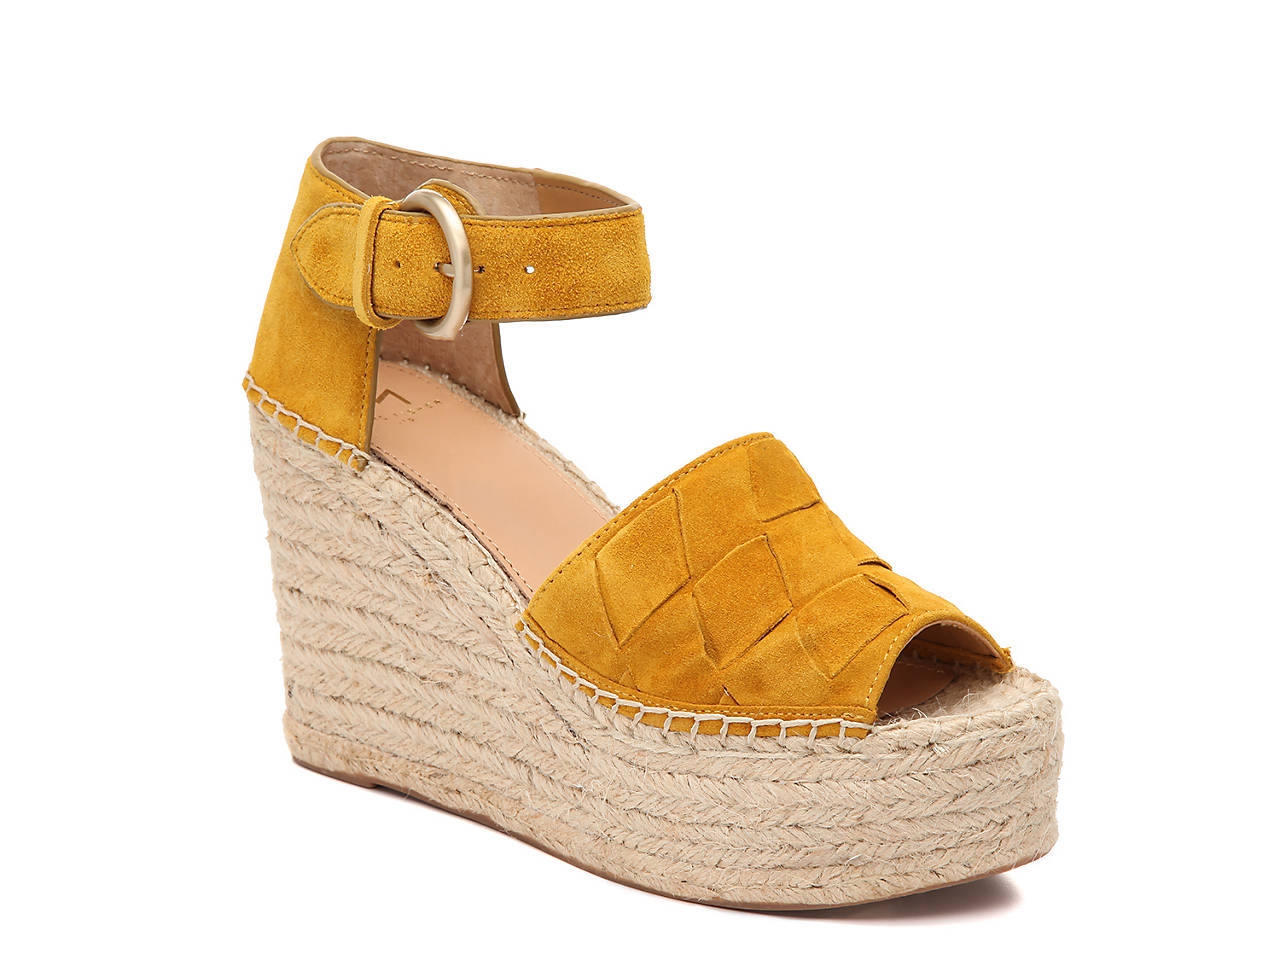 6dce3473279 Marc Fisher Adalla Espadrille Wedge Sandal Women s Shoes